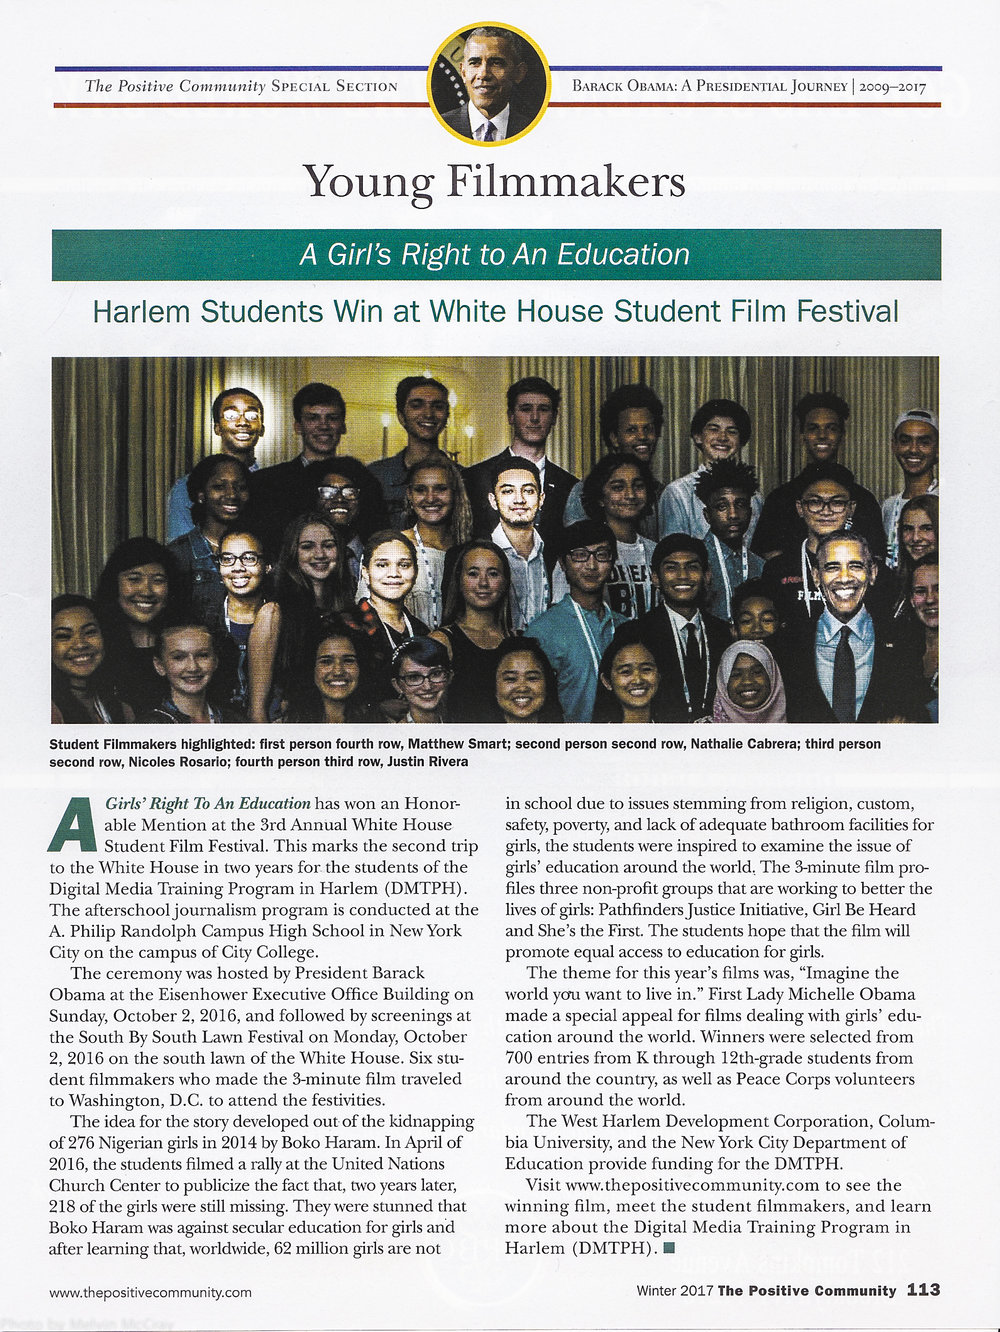 Positive Community Magazine page 113 Young Filmmakers-0002.jpg